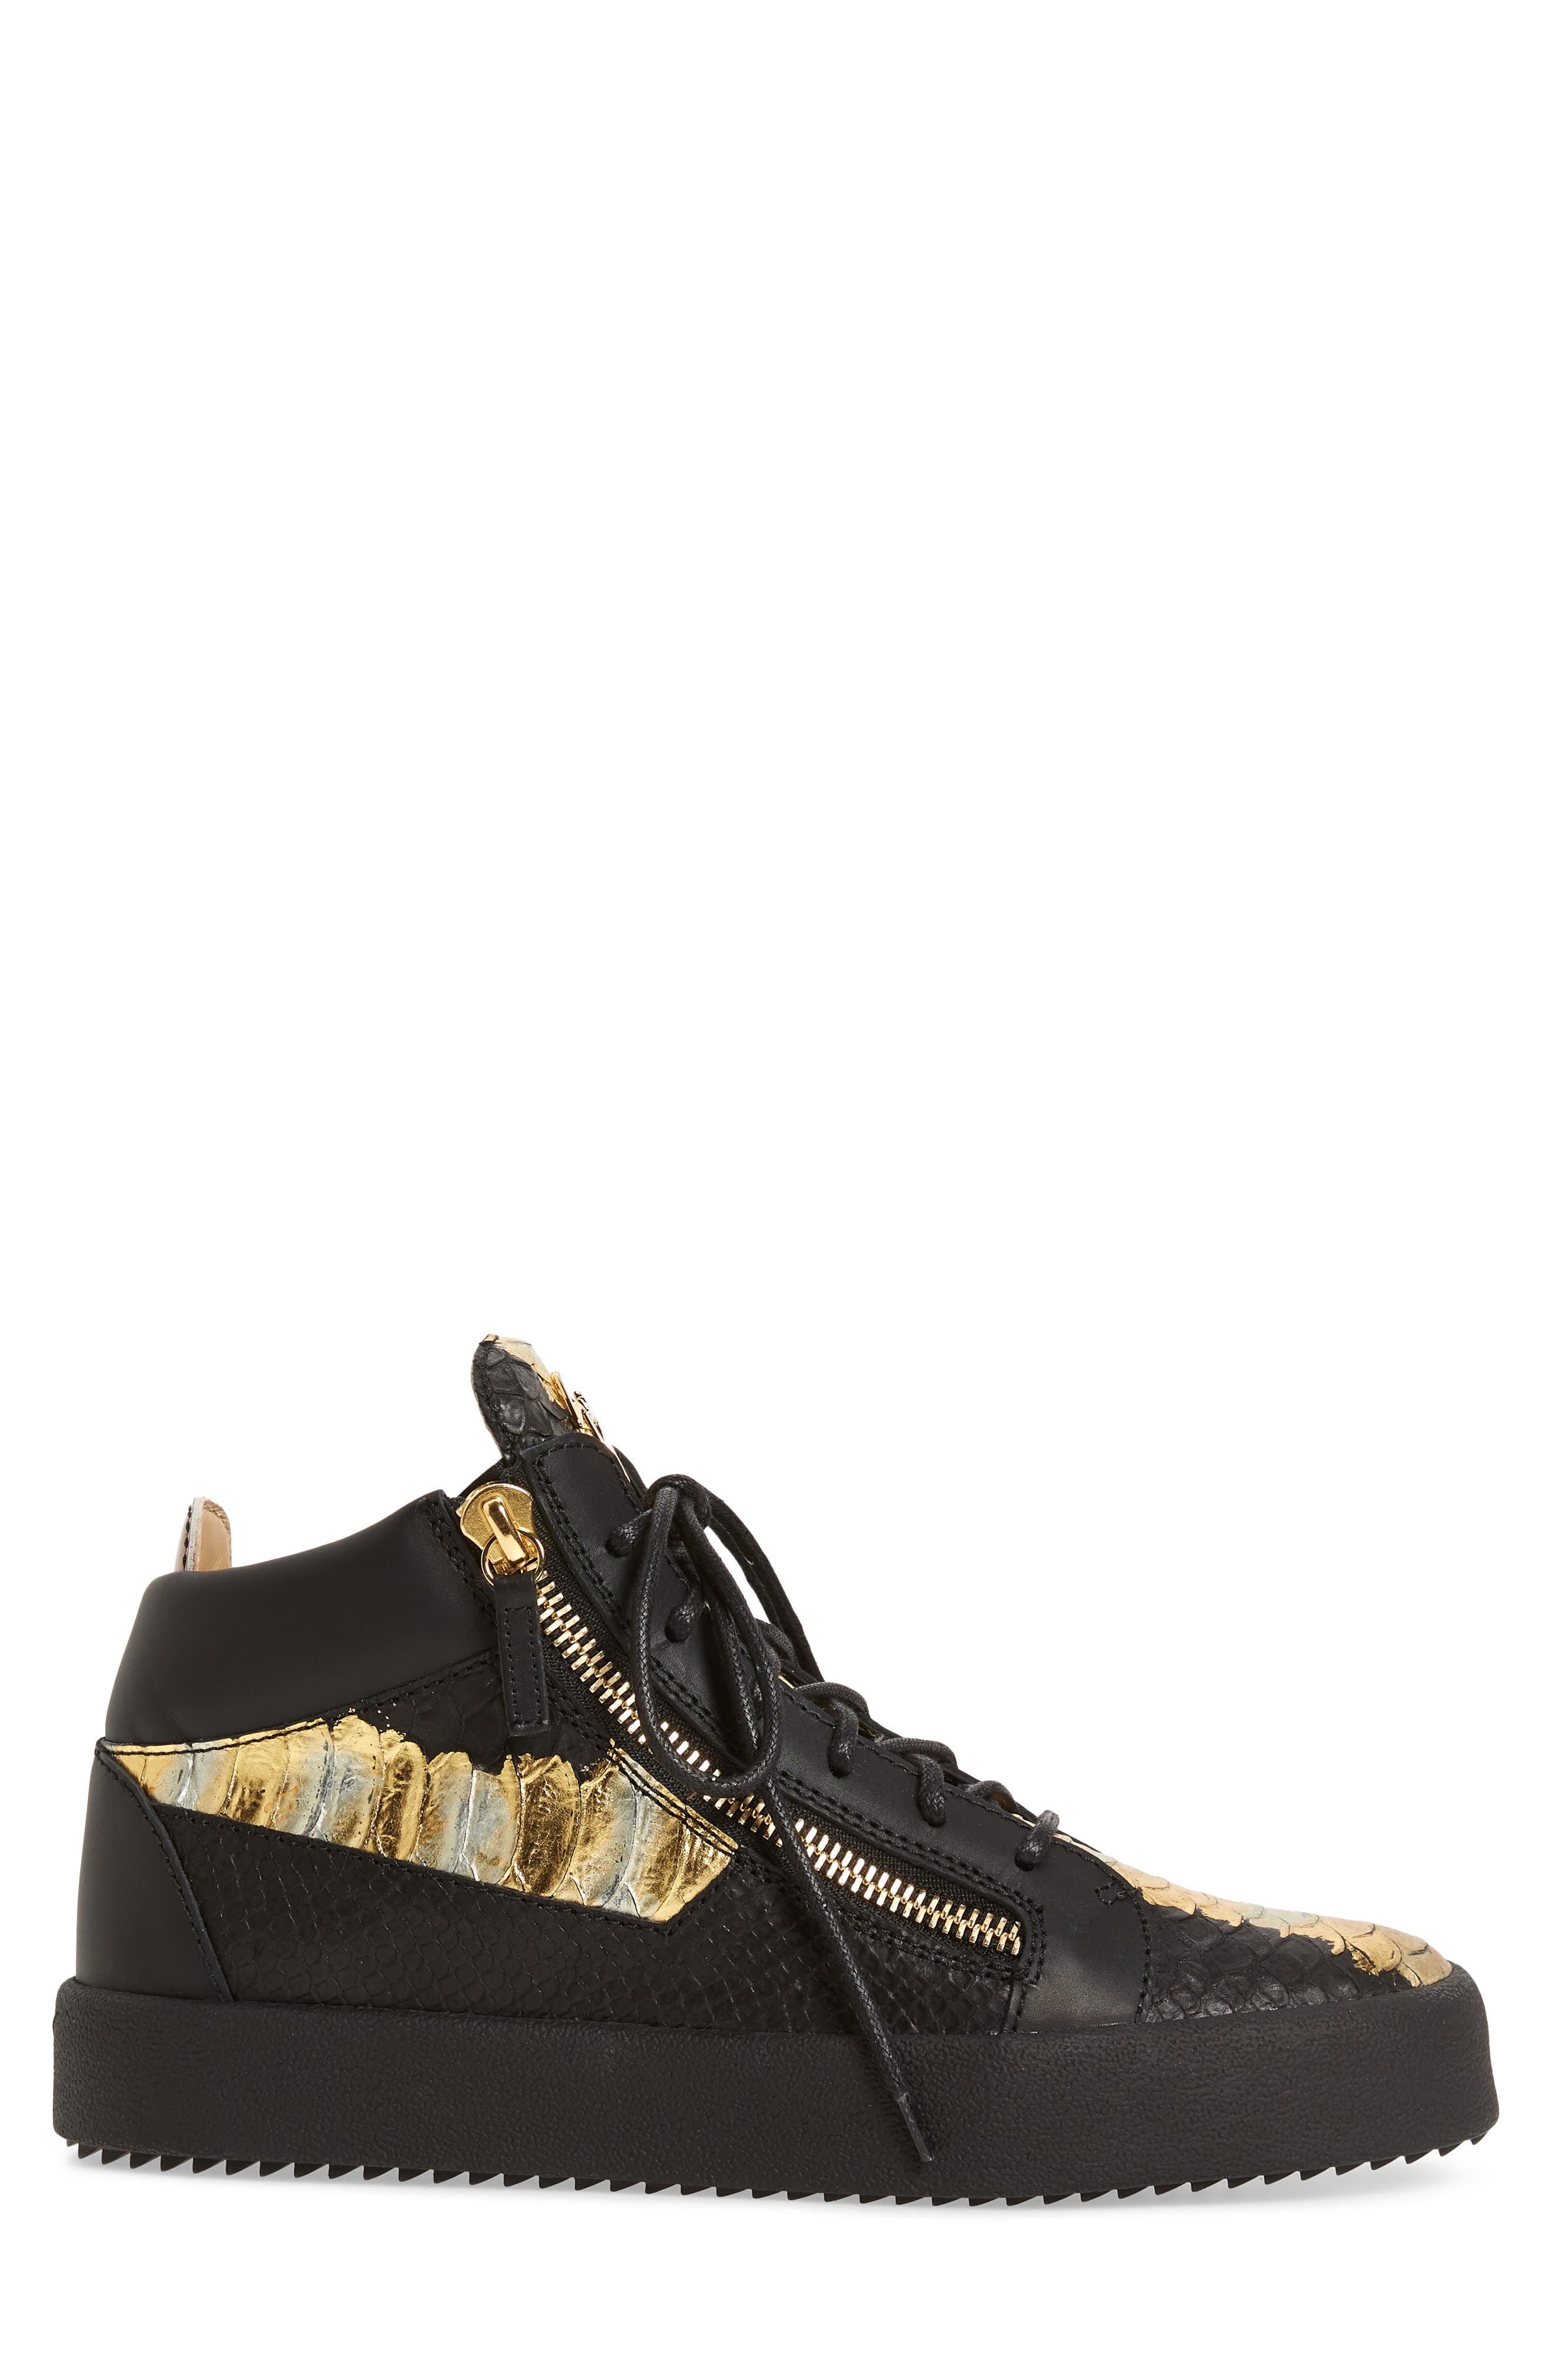 High-Top Sneaker,                             Alternate thumbnail 3, color,                             Black Leather